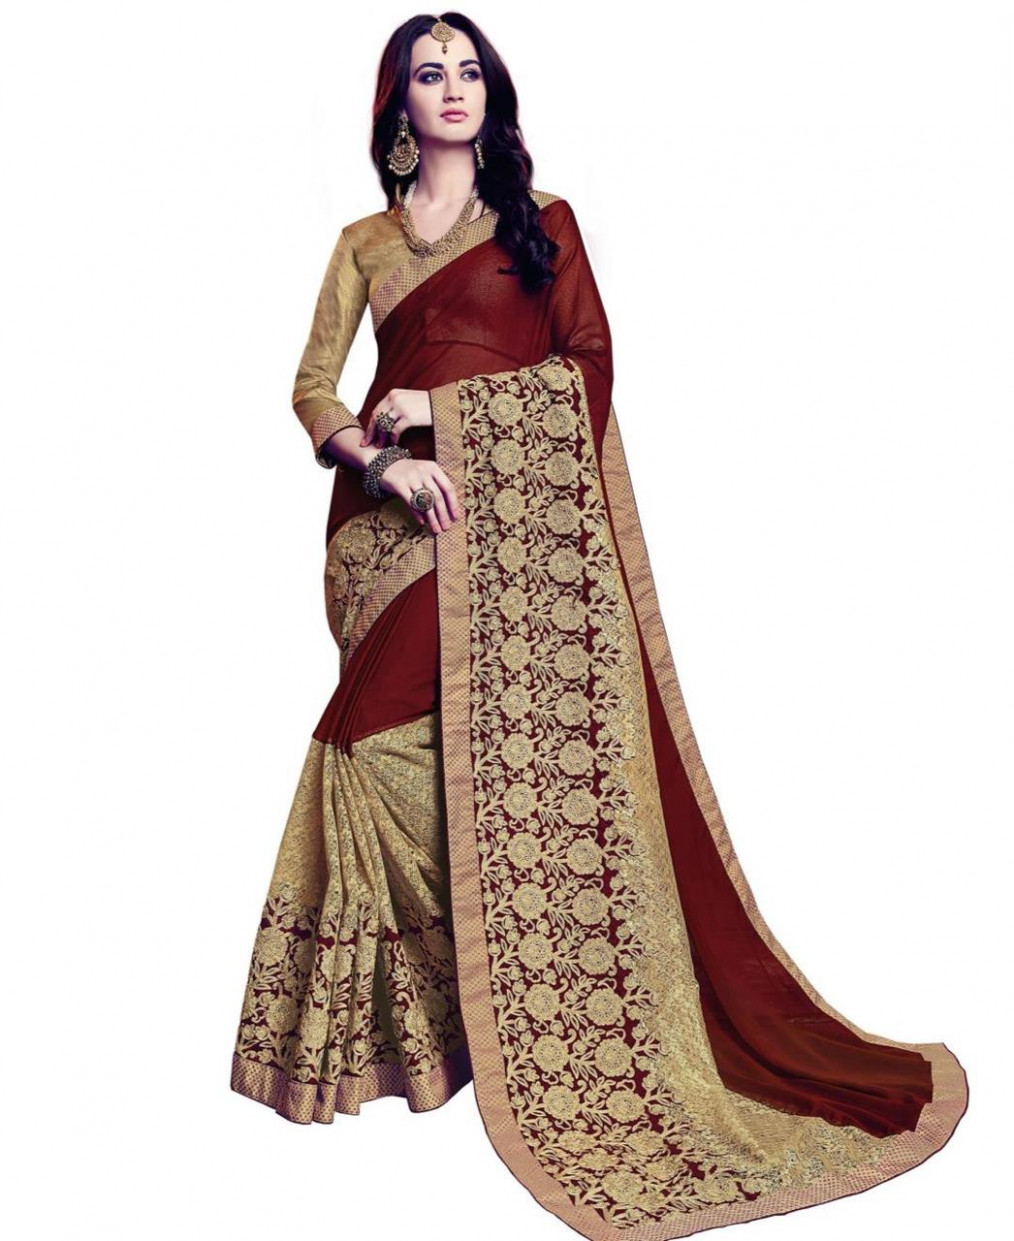 Buy Shapely Maroon & Gold Wedding Saree [117887] at 122.91